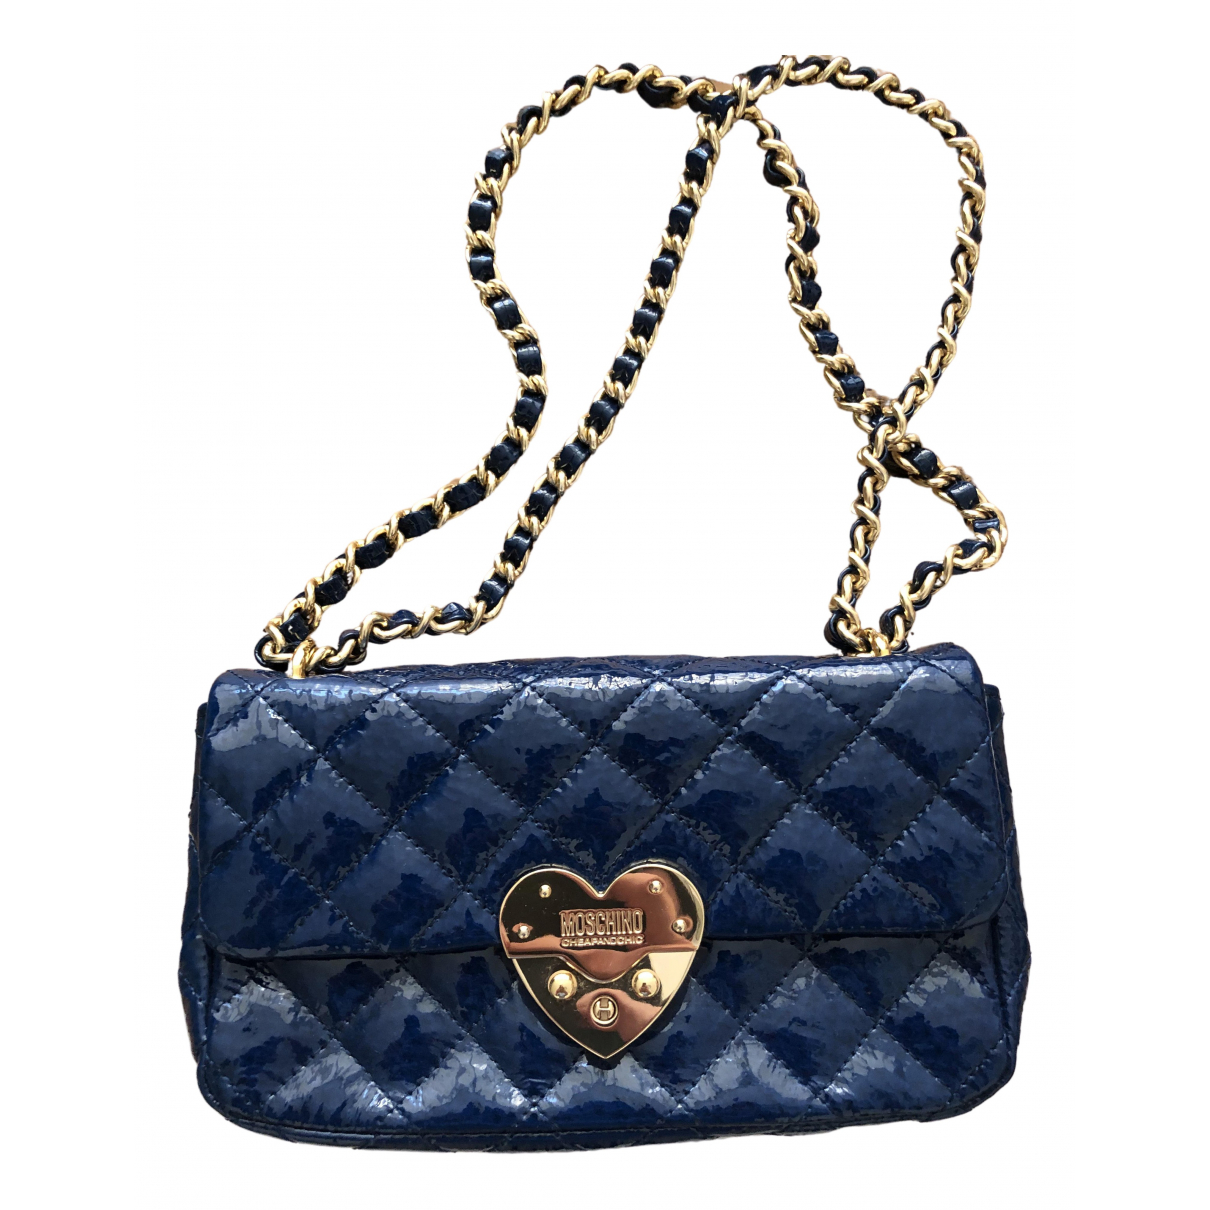 Moschino Cheap And Chic \N Blue Leather handbag for Women \N